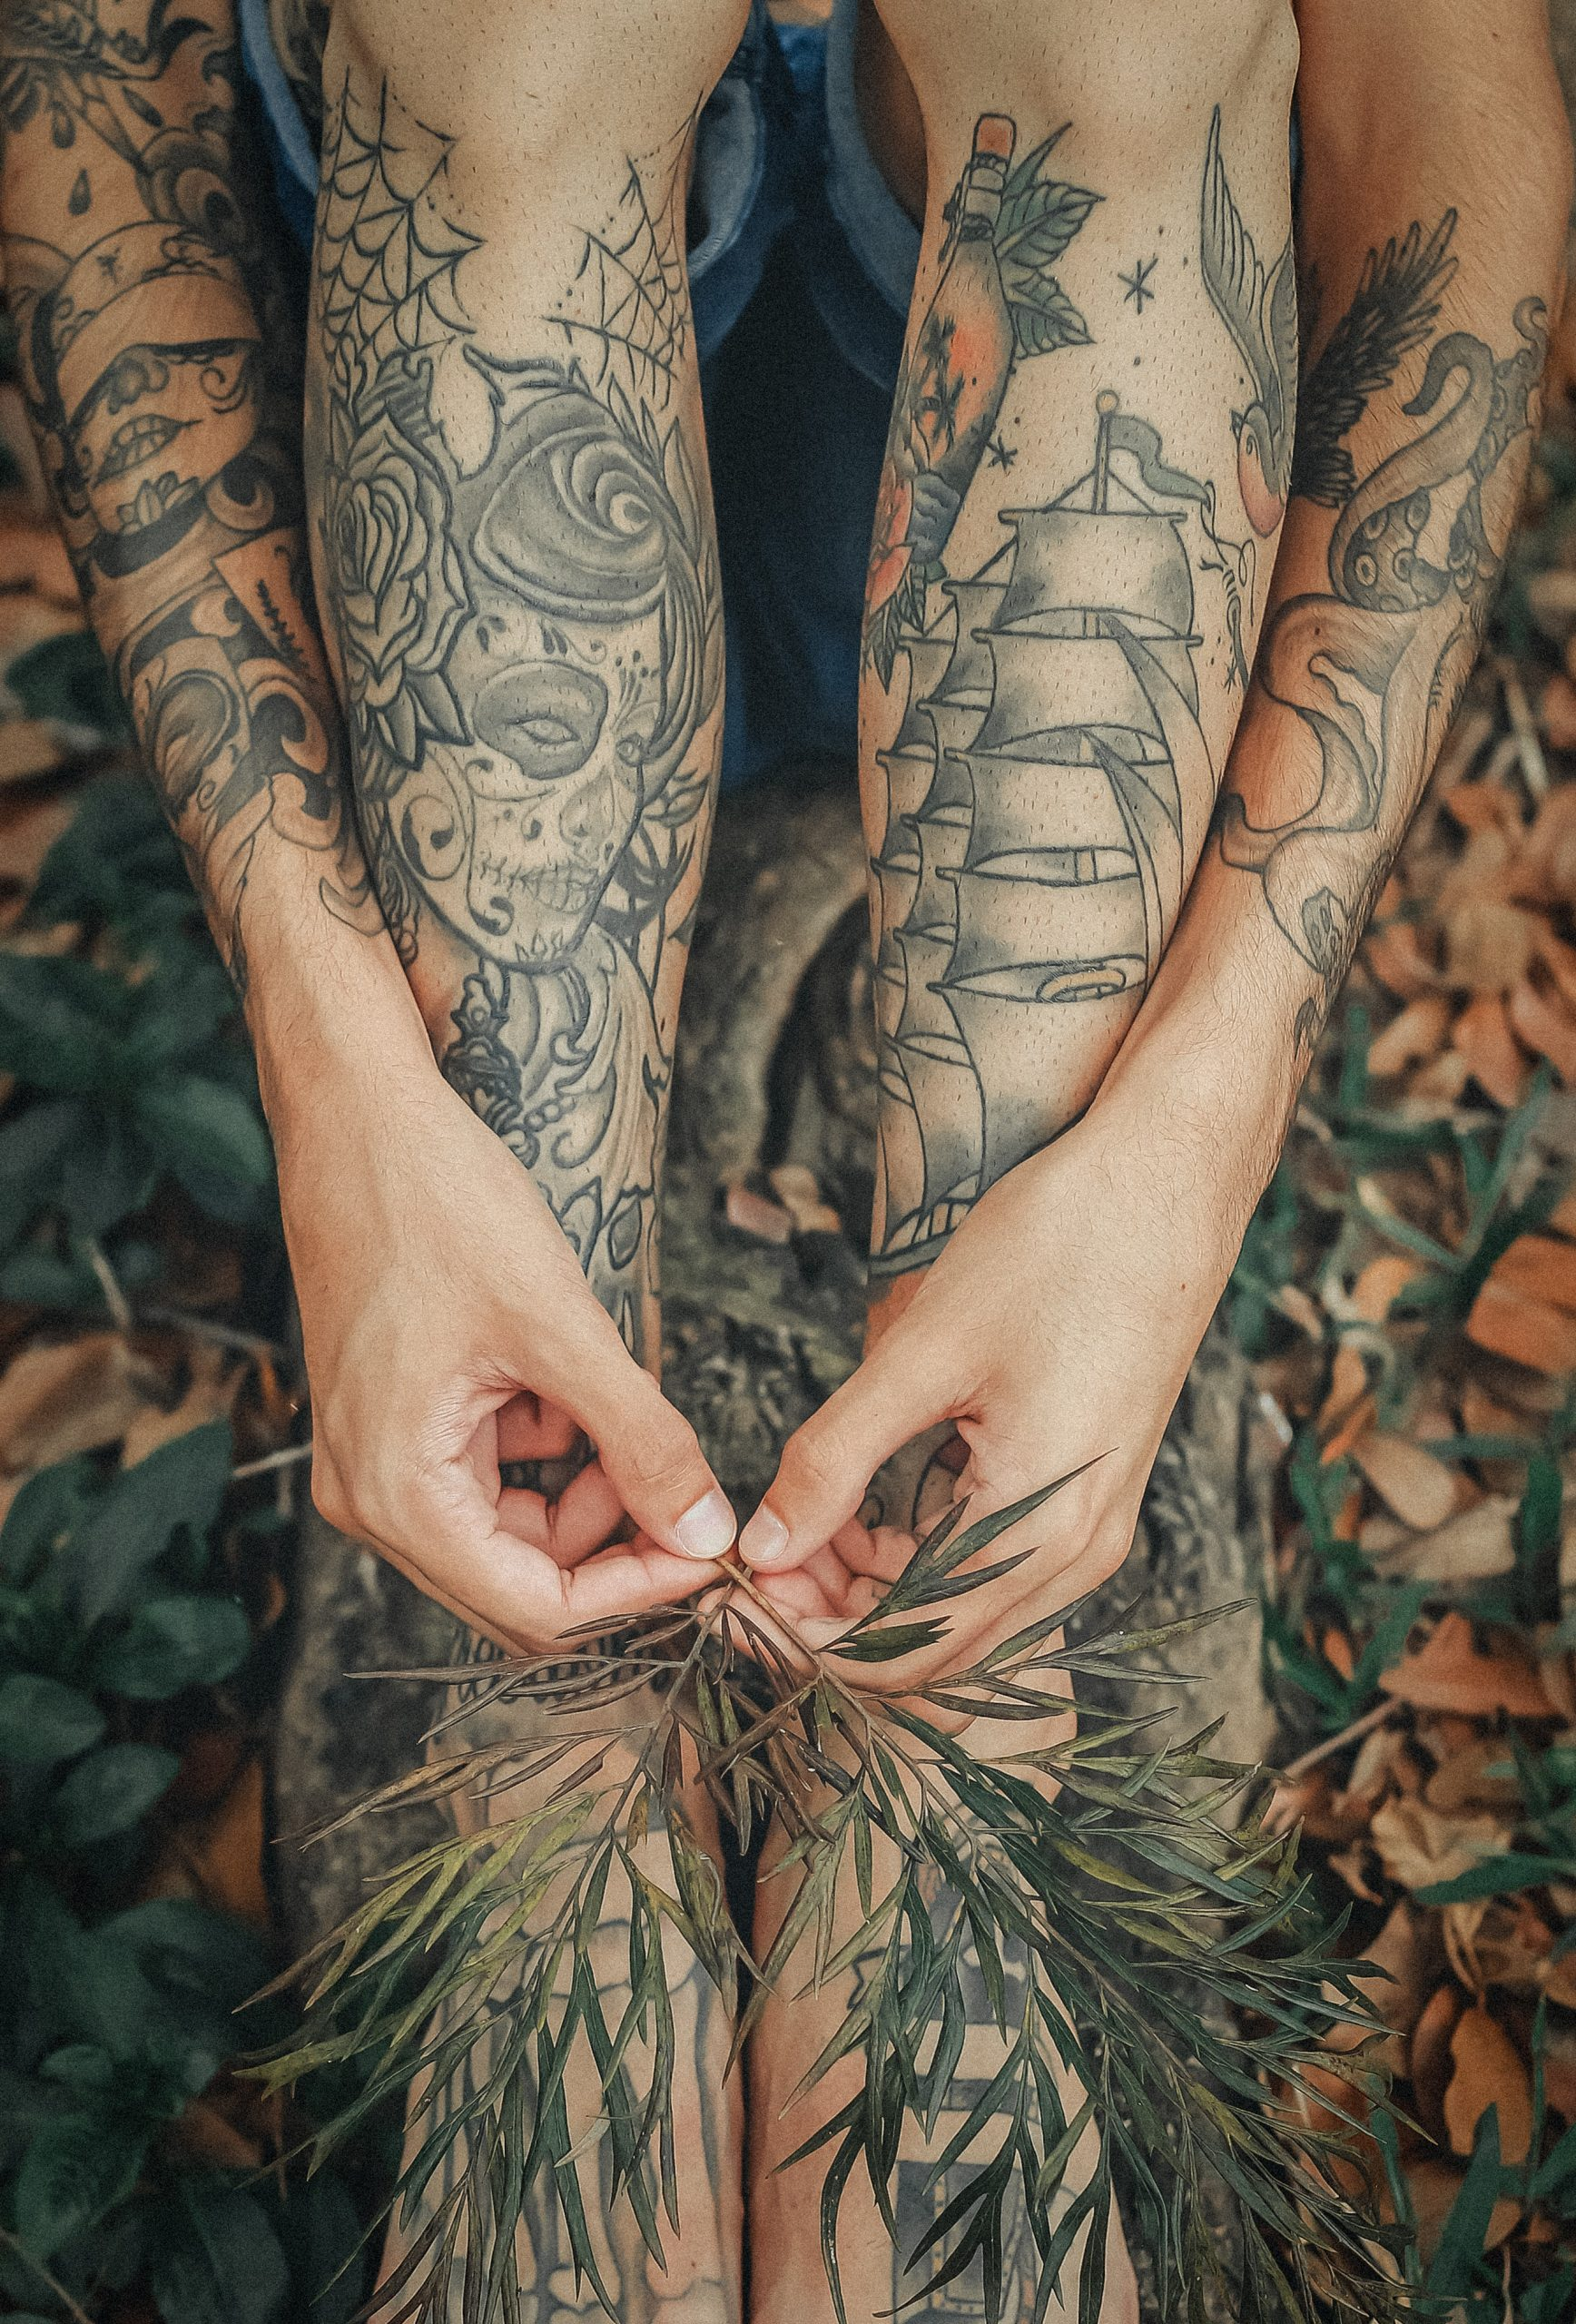 tattooed women holding leaves